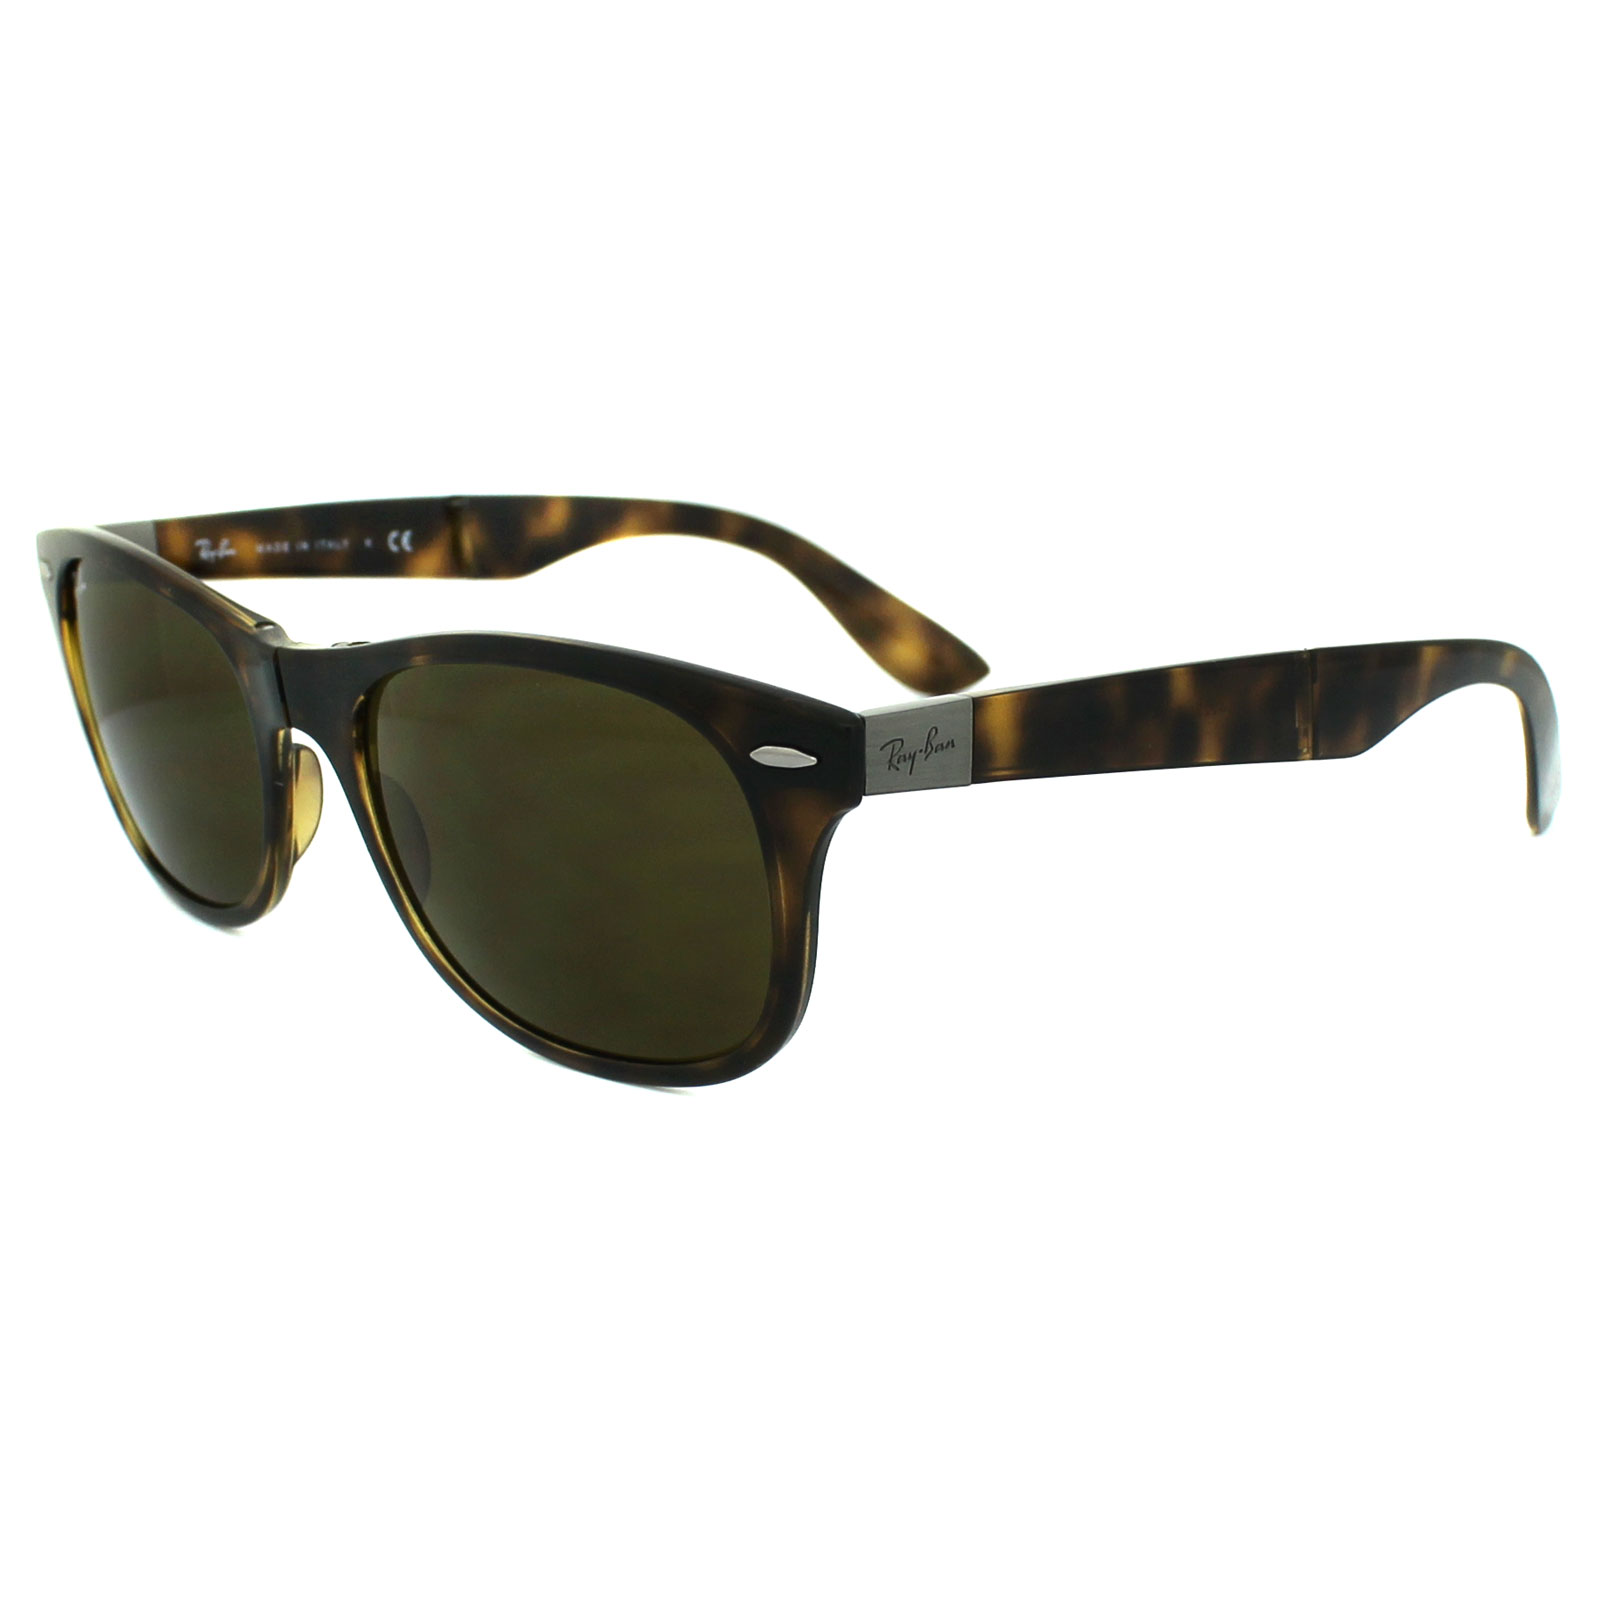 c4e12f4acac3 Ray Ban Sunglasses At Ebay